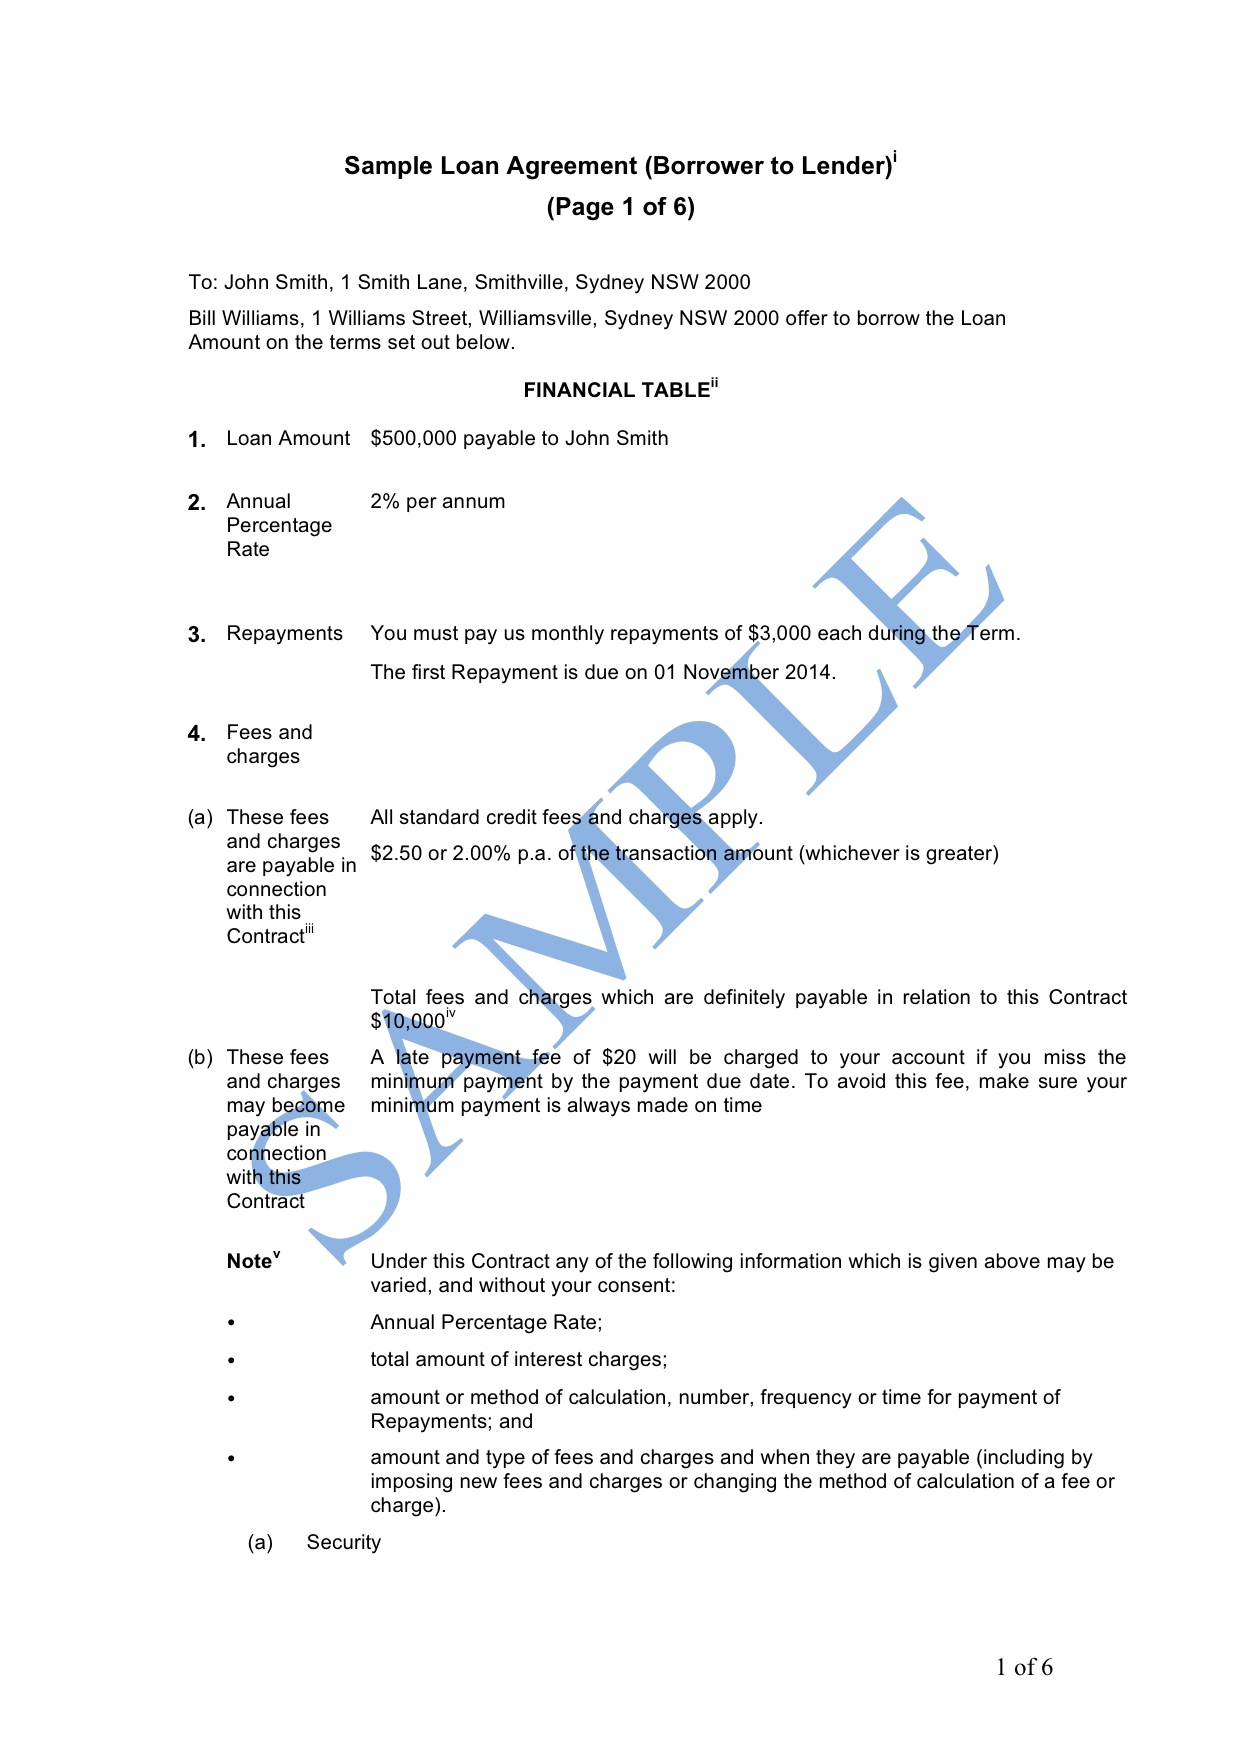 Loan agreement borrower to lender sample lawpath for Directors loan to company agreement template